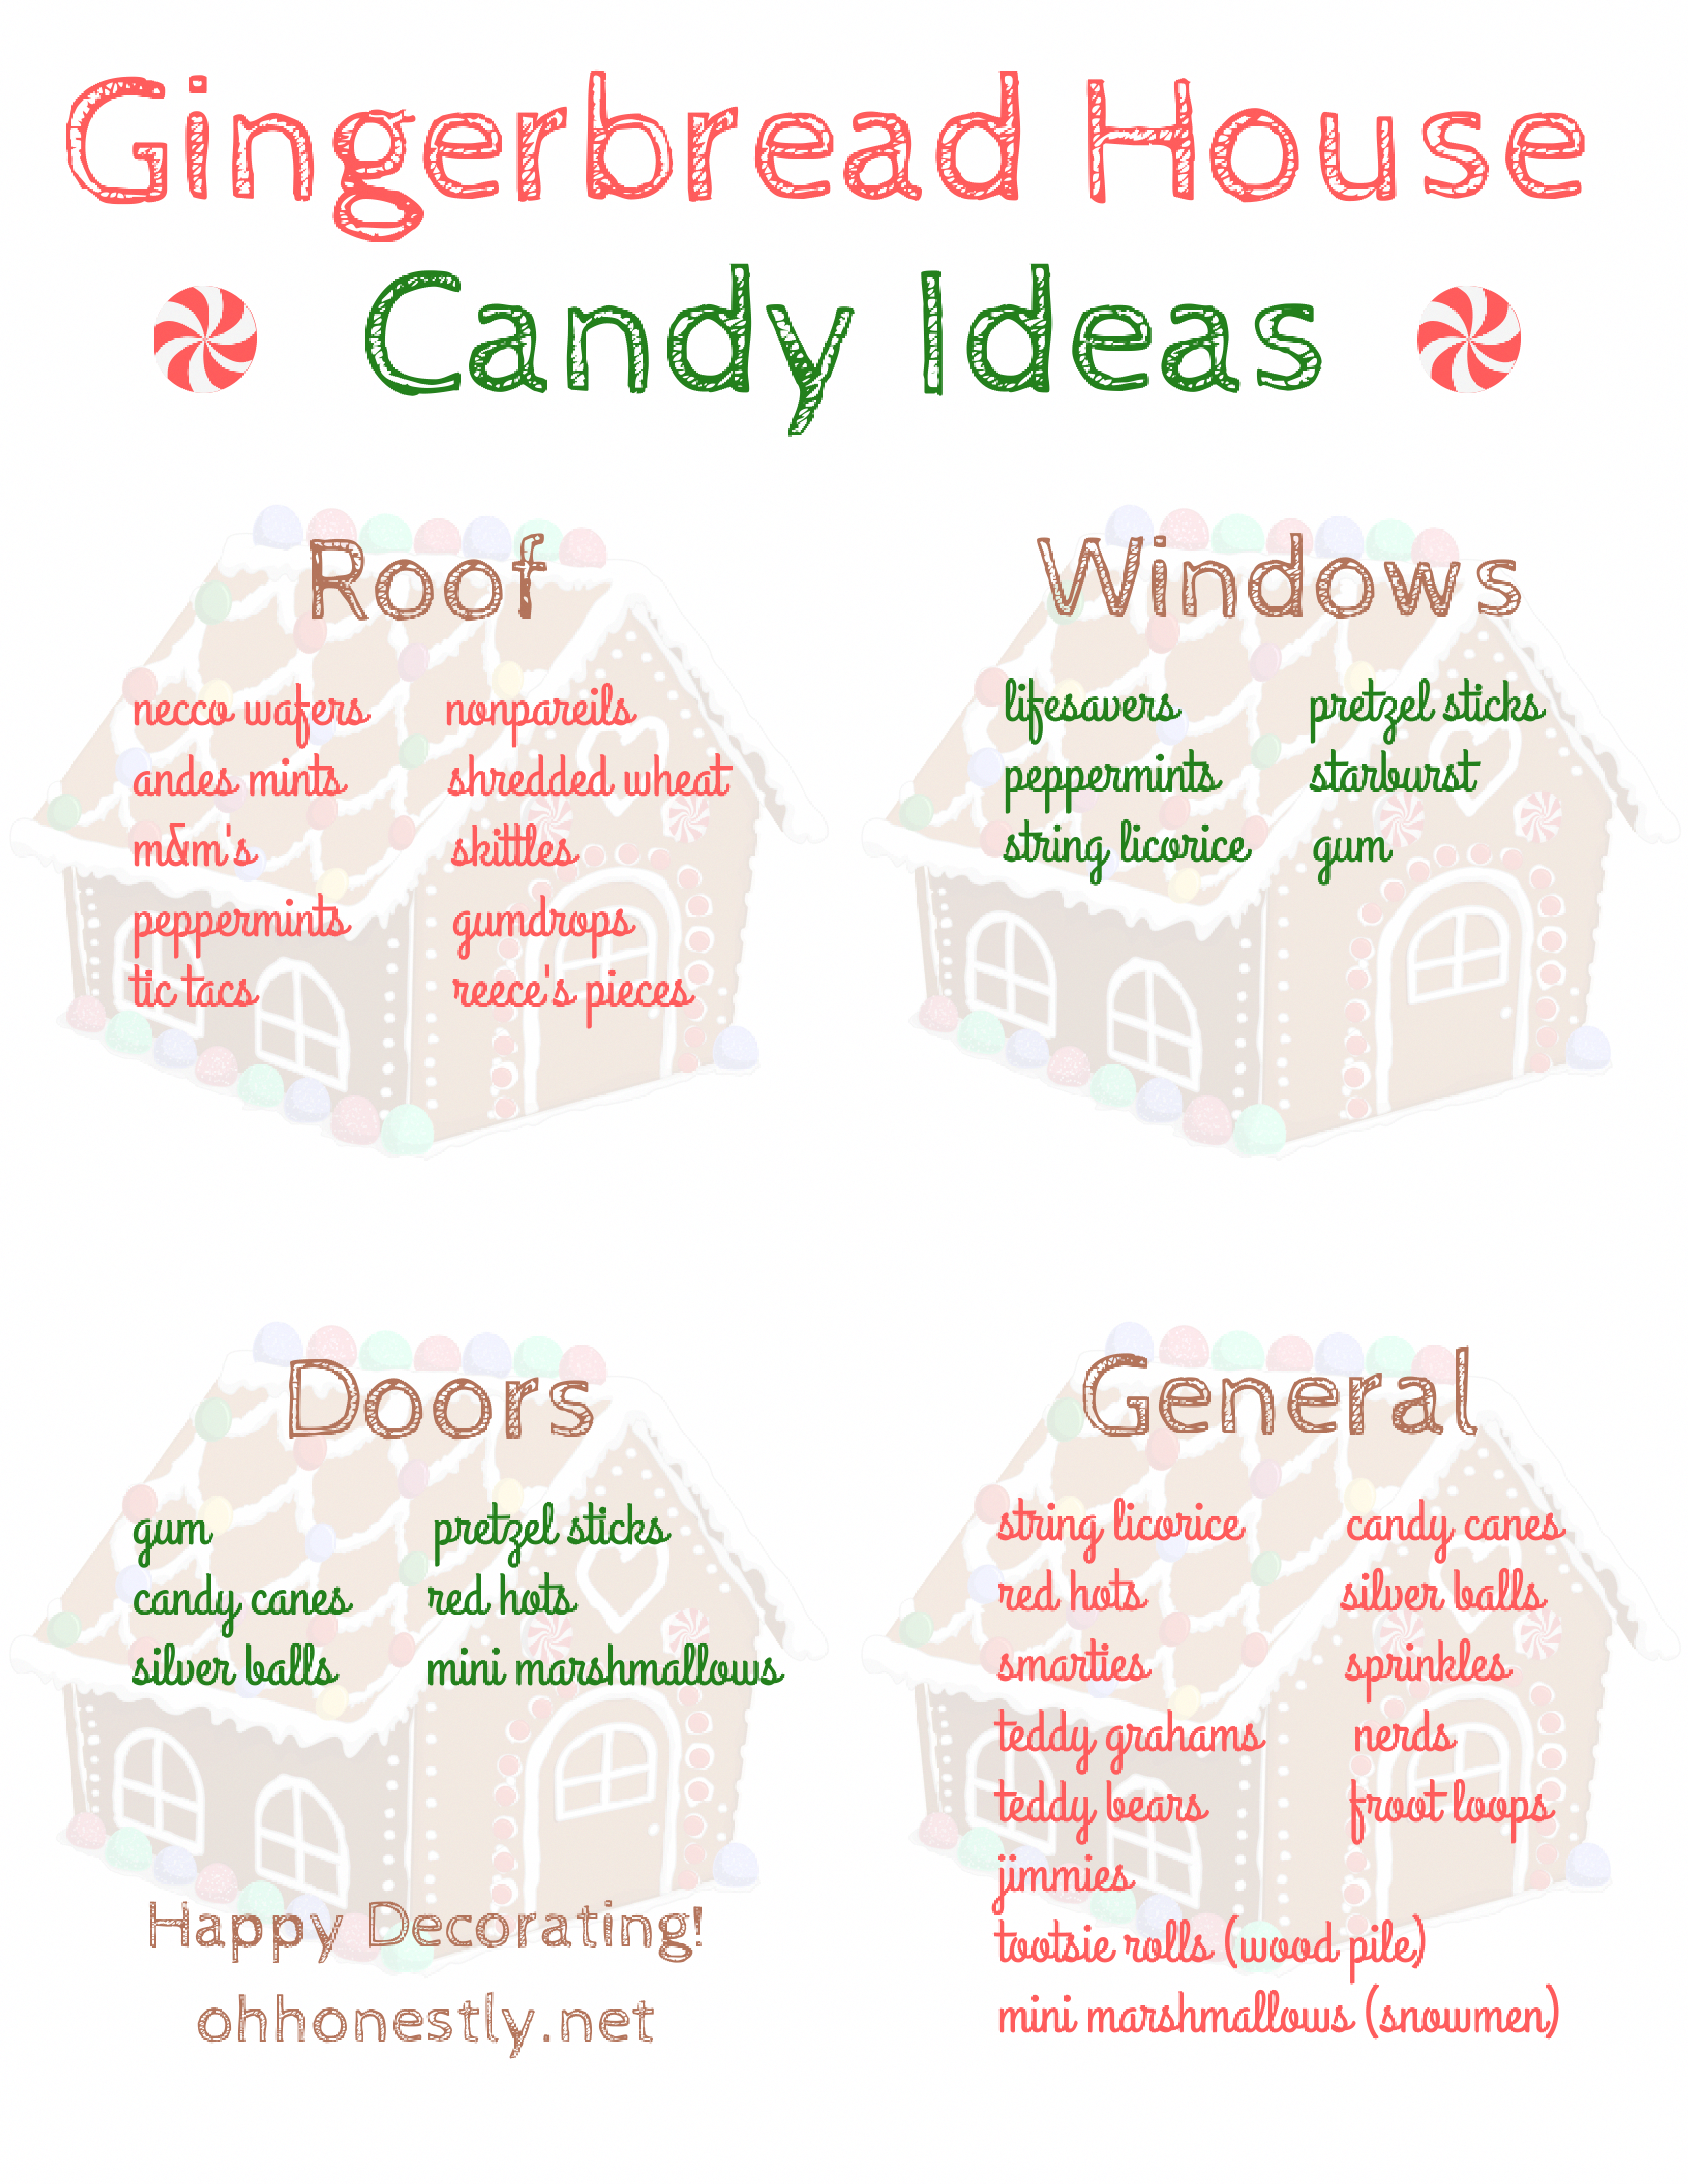 Planning To Decorate A Gingerbread House But Need Some Candy Ideas Grab This Fre Gingerbread House Candy Homemade Gingerbread House Gingerbread House Parties